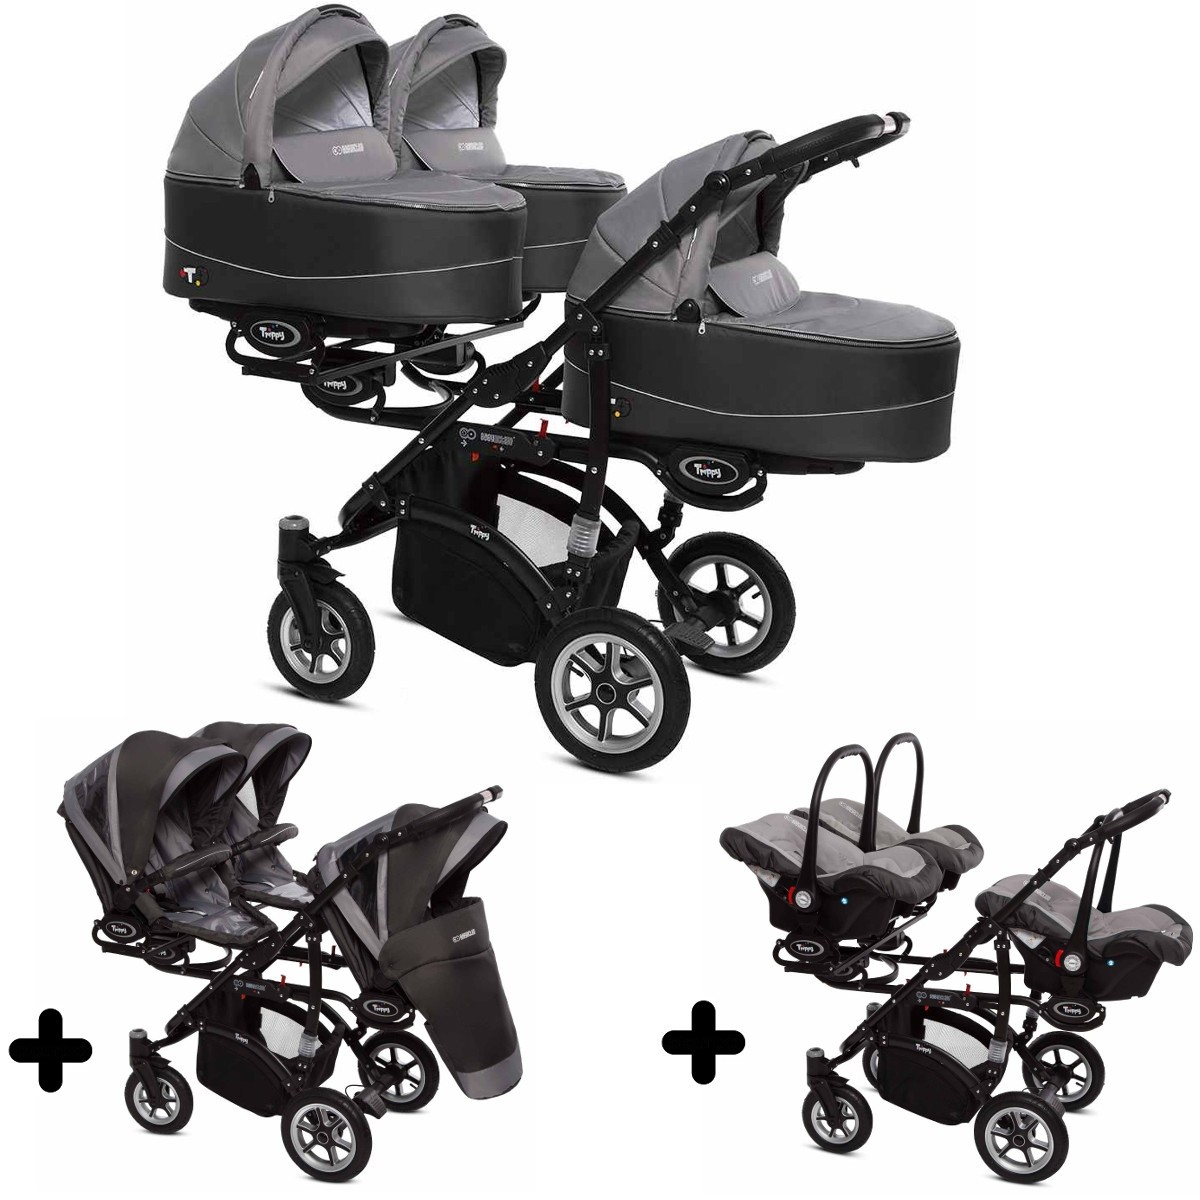 trippy drillings kombi kinderwagen 3in1 set mit 3 babyschalen 3 babywannen 3 sportaufs tzen. Black Bedroom Furniture Sets. Home Design Ideas